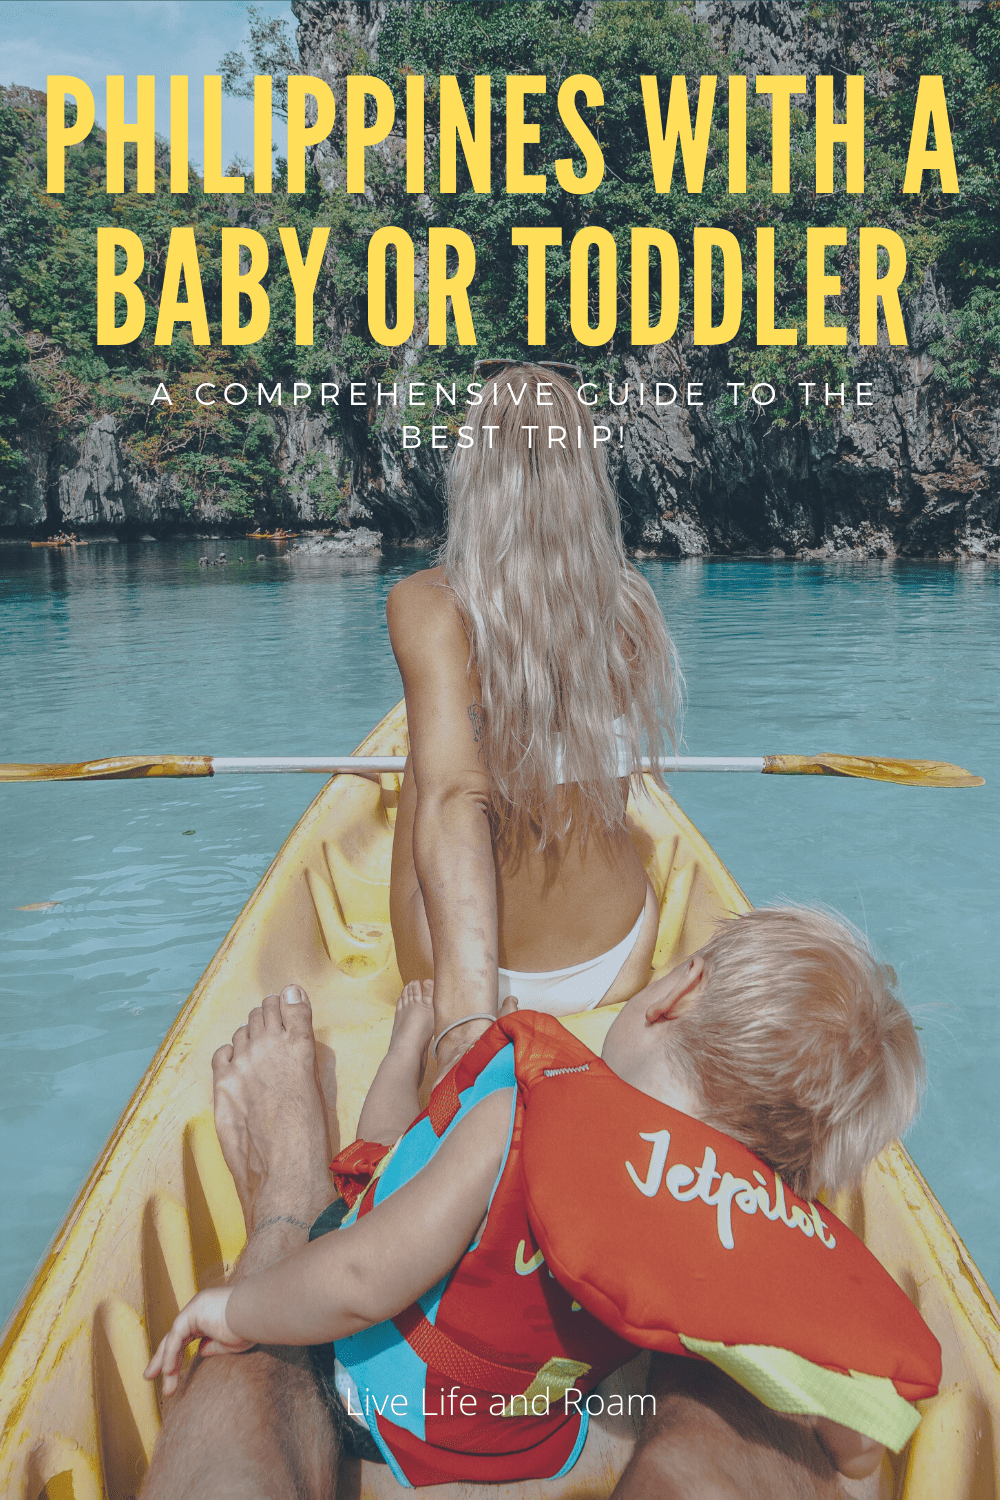 Philippines with a baby or toddler - live life and roam